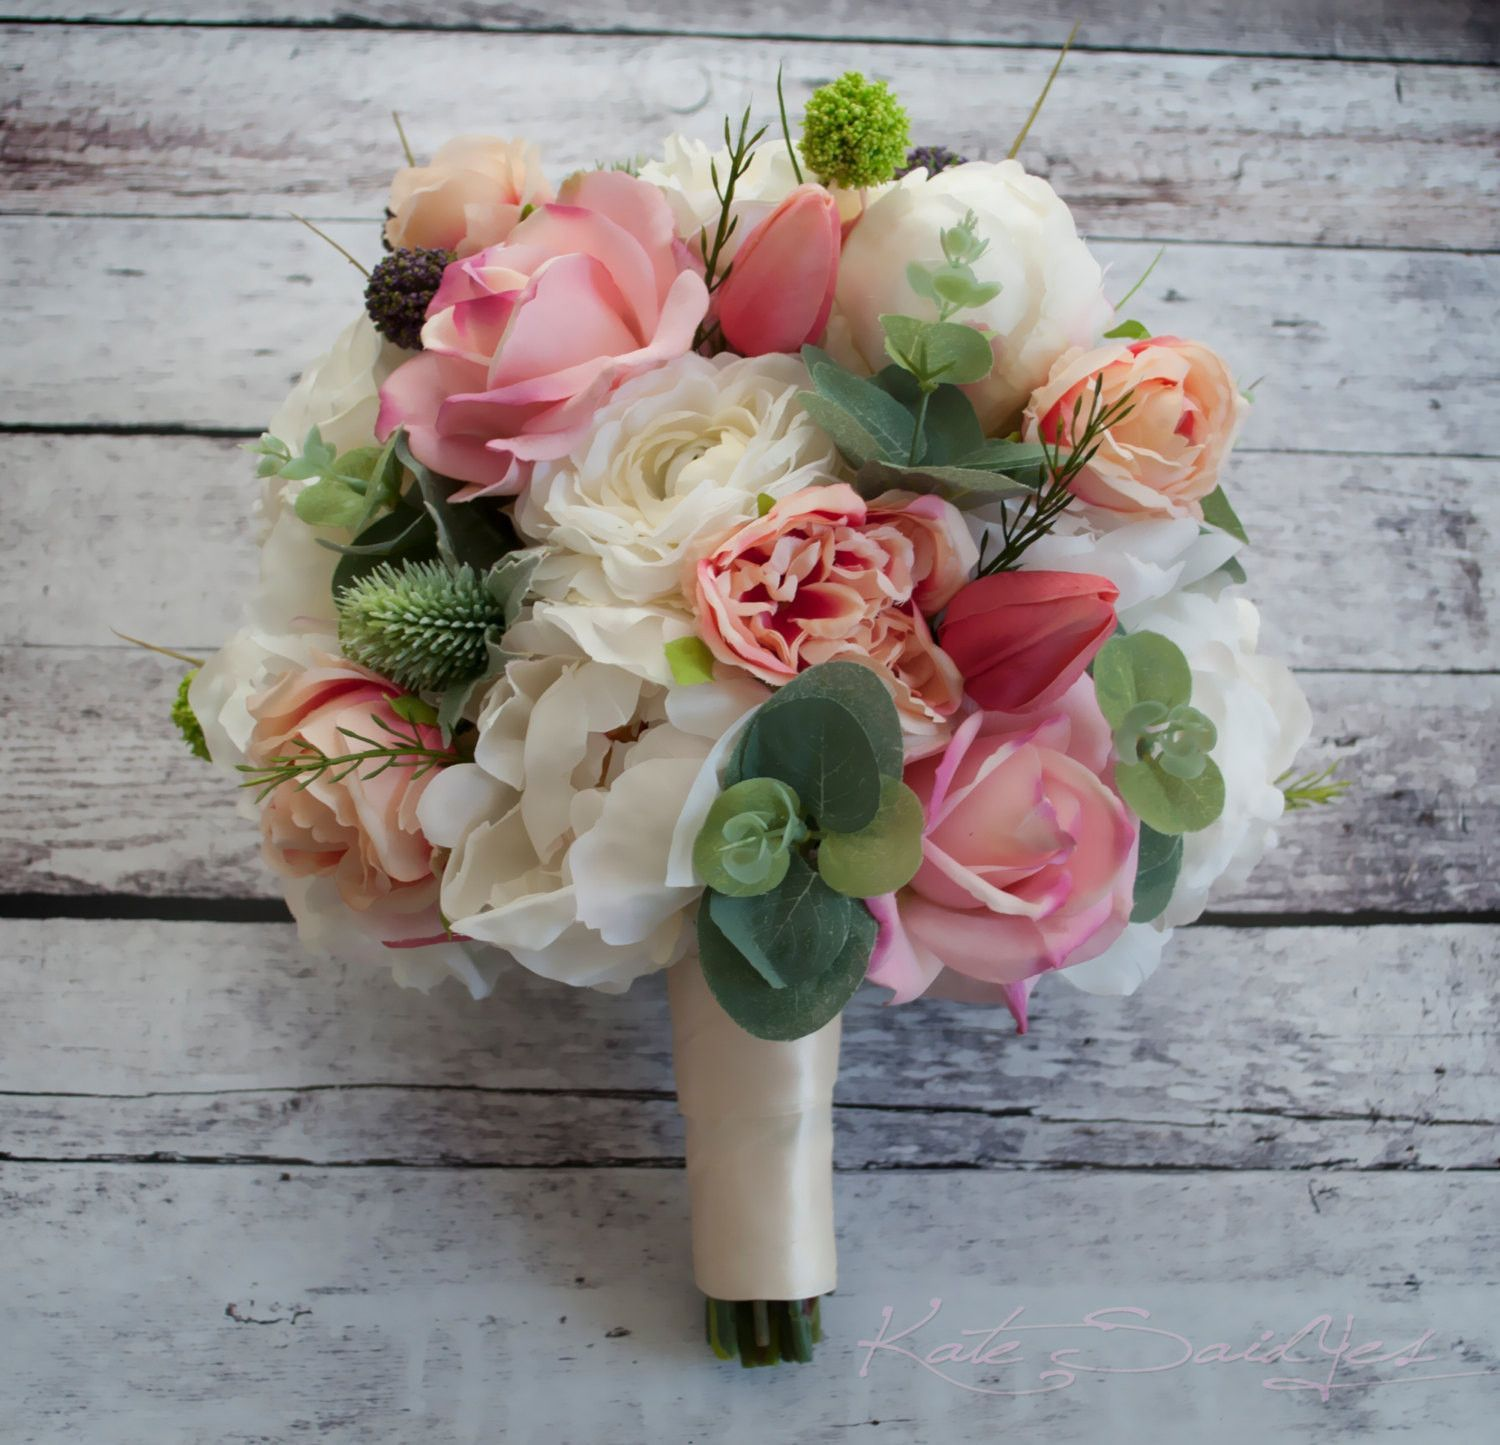 Garden Rose And Peony peony bouquet - peony ranunculus rose garden wedding bouquet